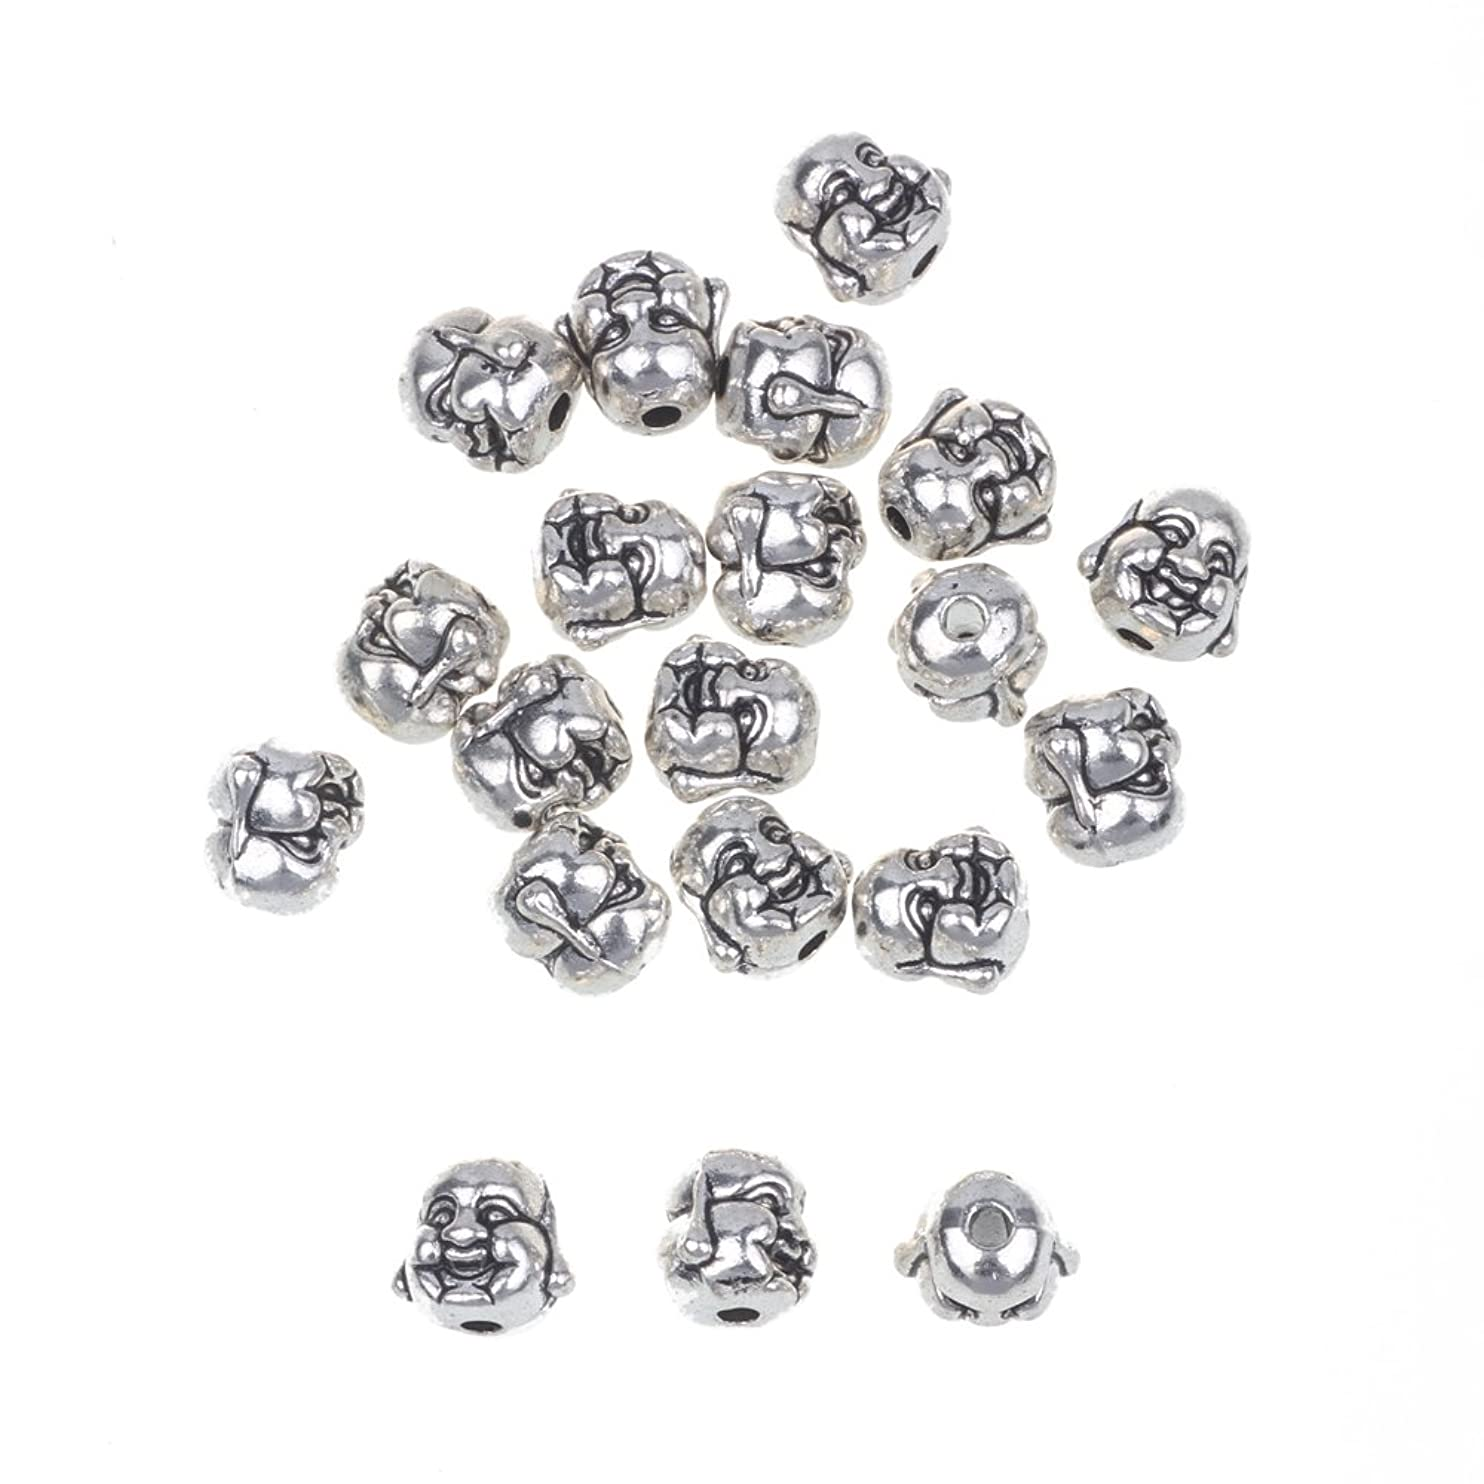 RUBYCA 20PCS Laughing Buddha Small Spiritual Metal Beads Silver Color Spacer Jewelry Making Bracelet